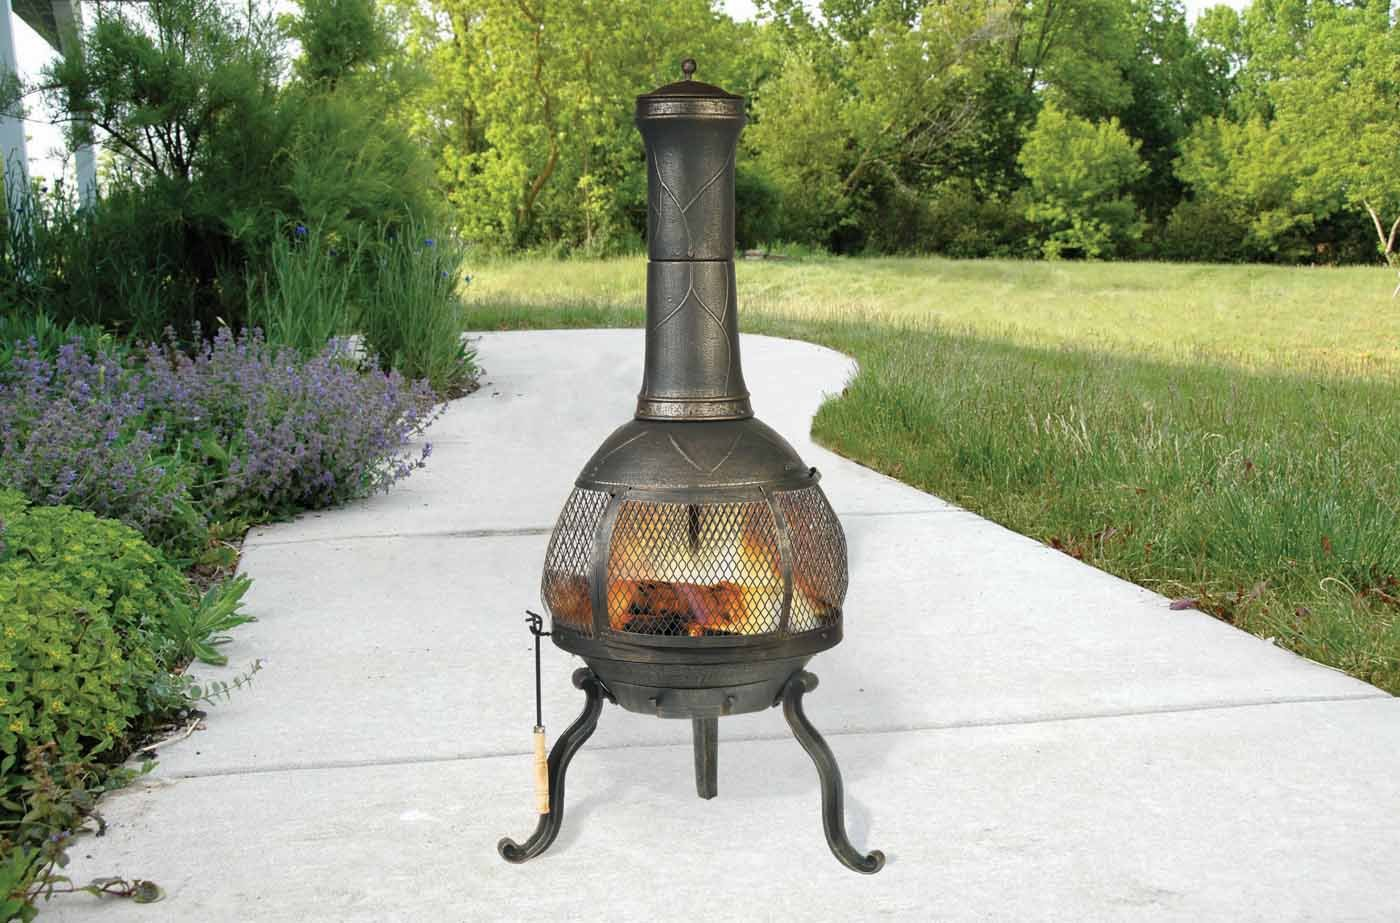 Fire pit regulations in Baltimore? : baltimore